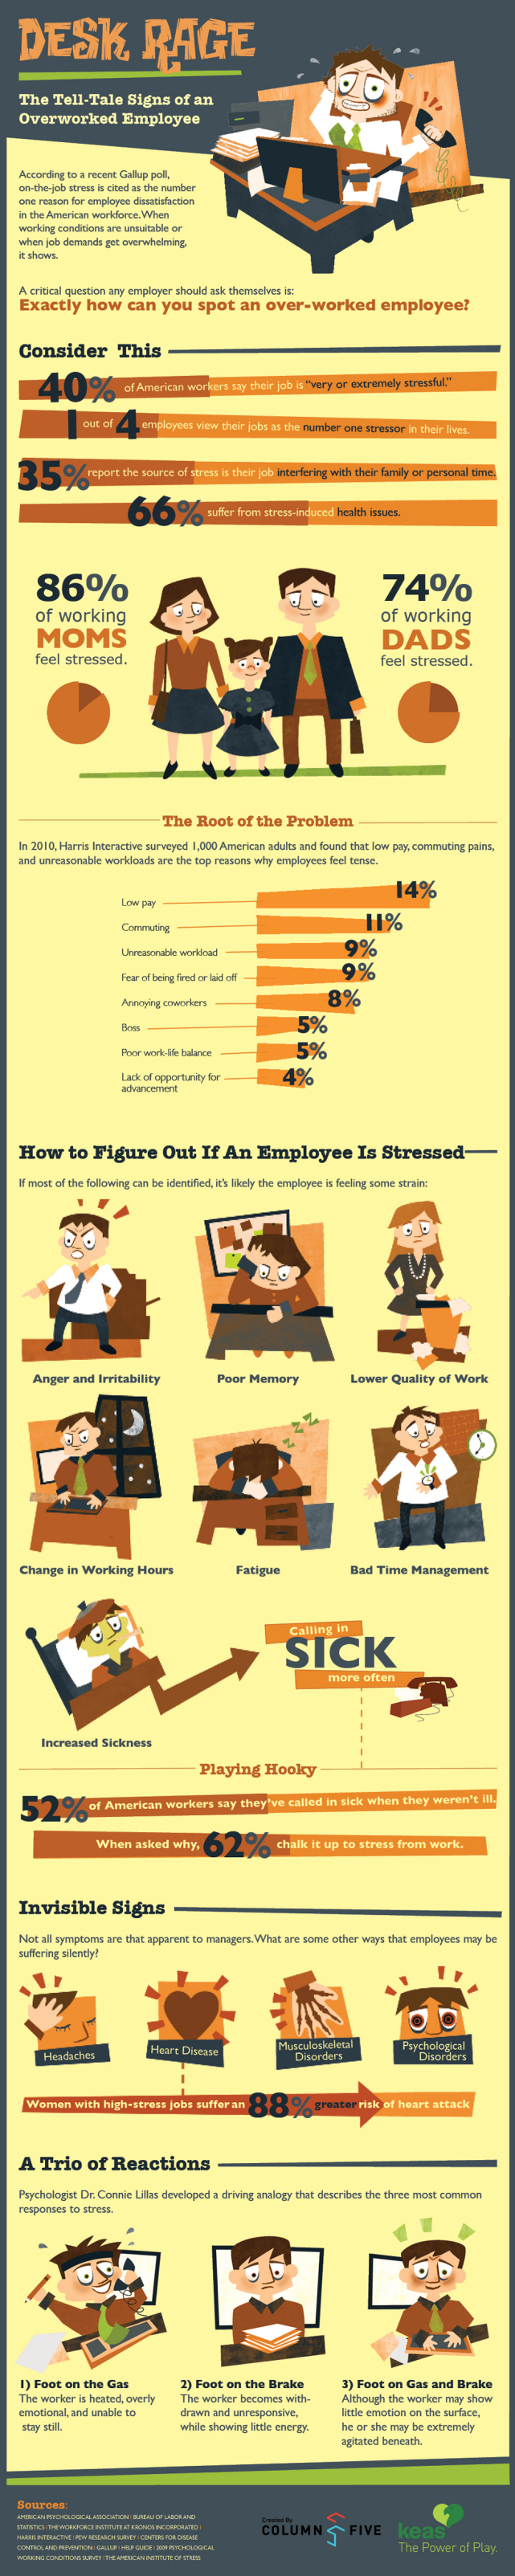 employee-overworked-infographic